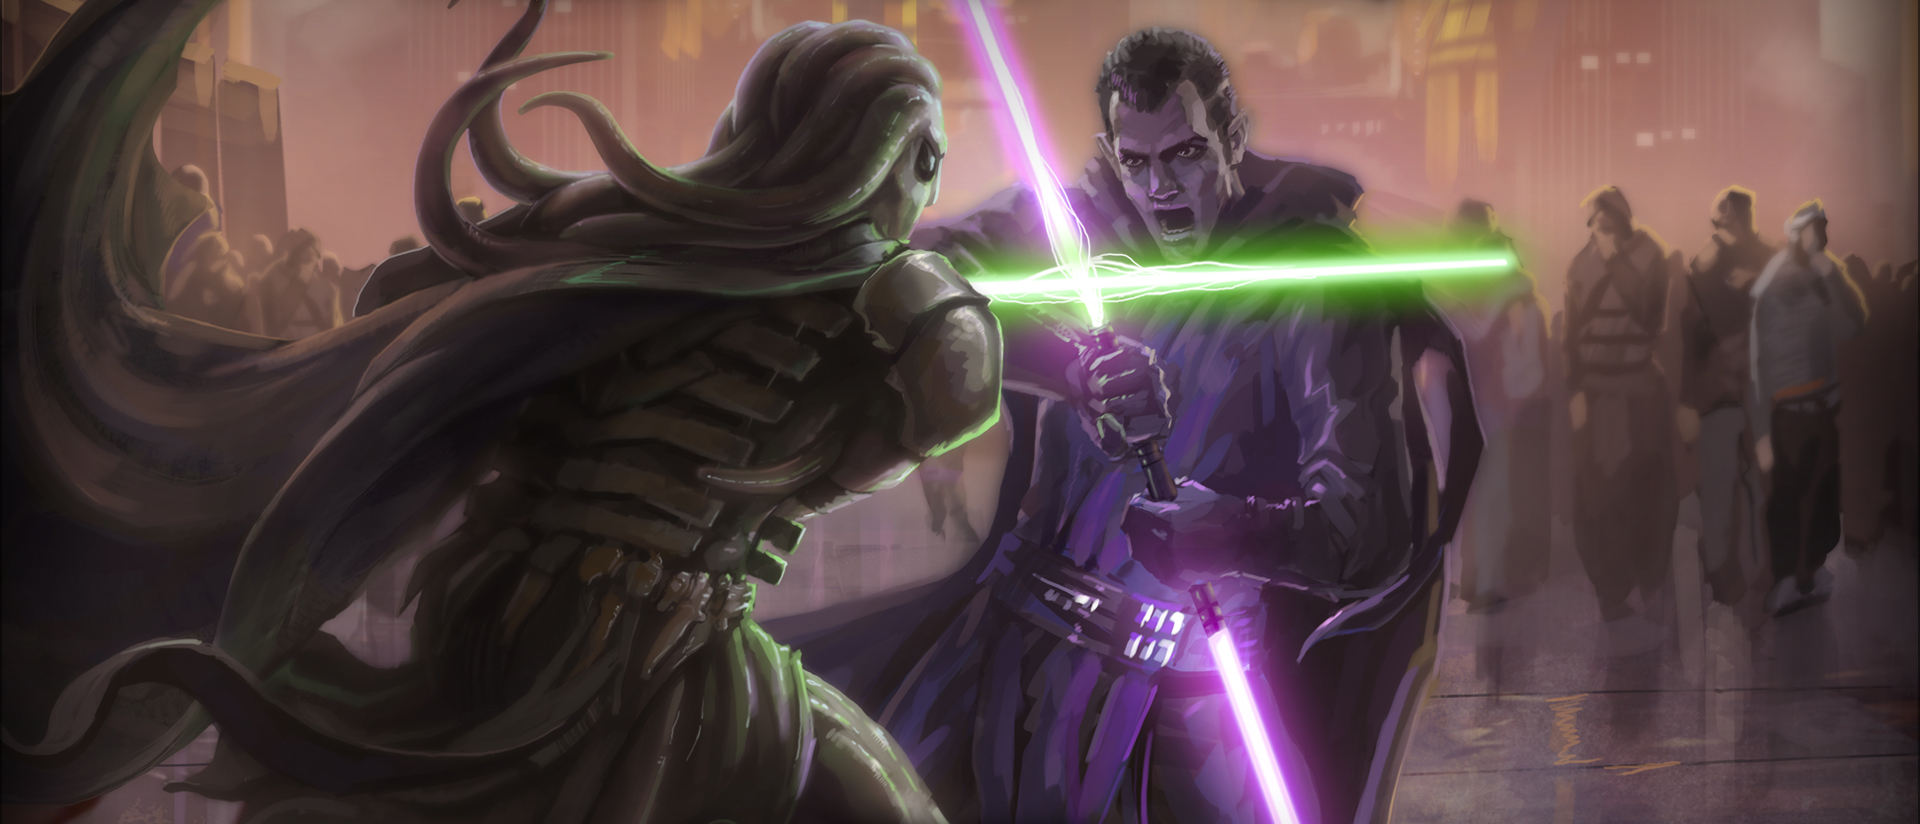 Duel on Coruscant (Inter–Sith Wars Period)